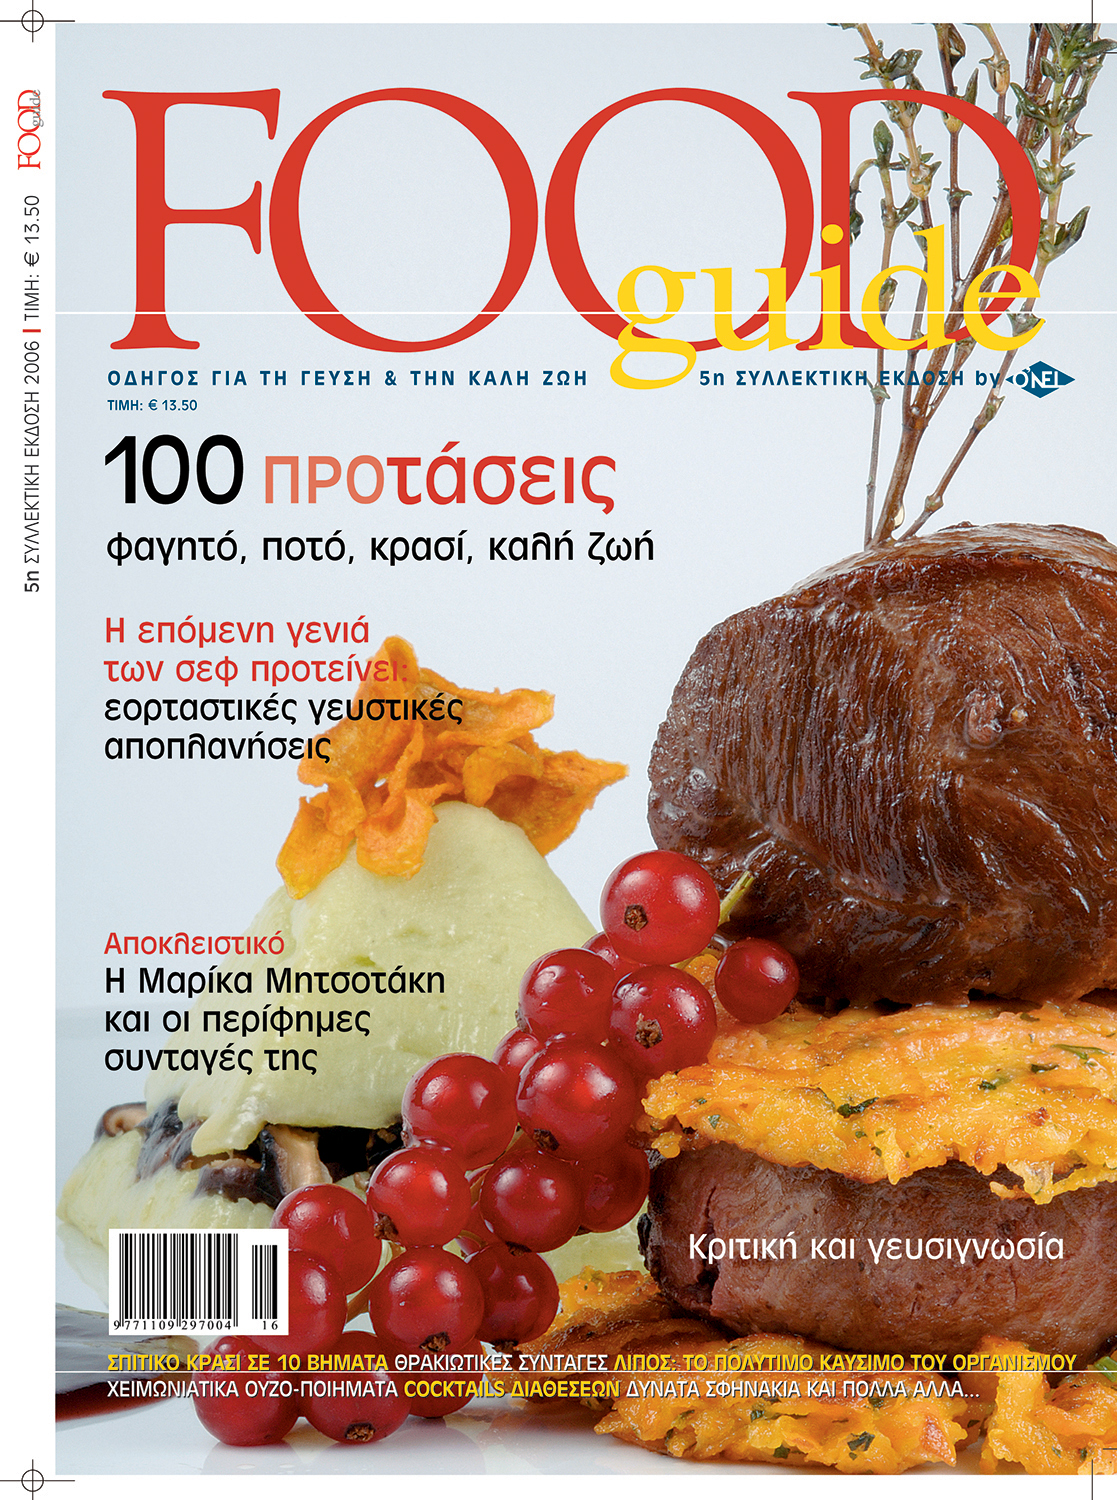 Food guide 5th special edition by O'NEL